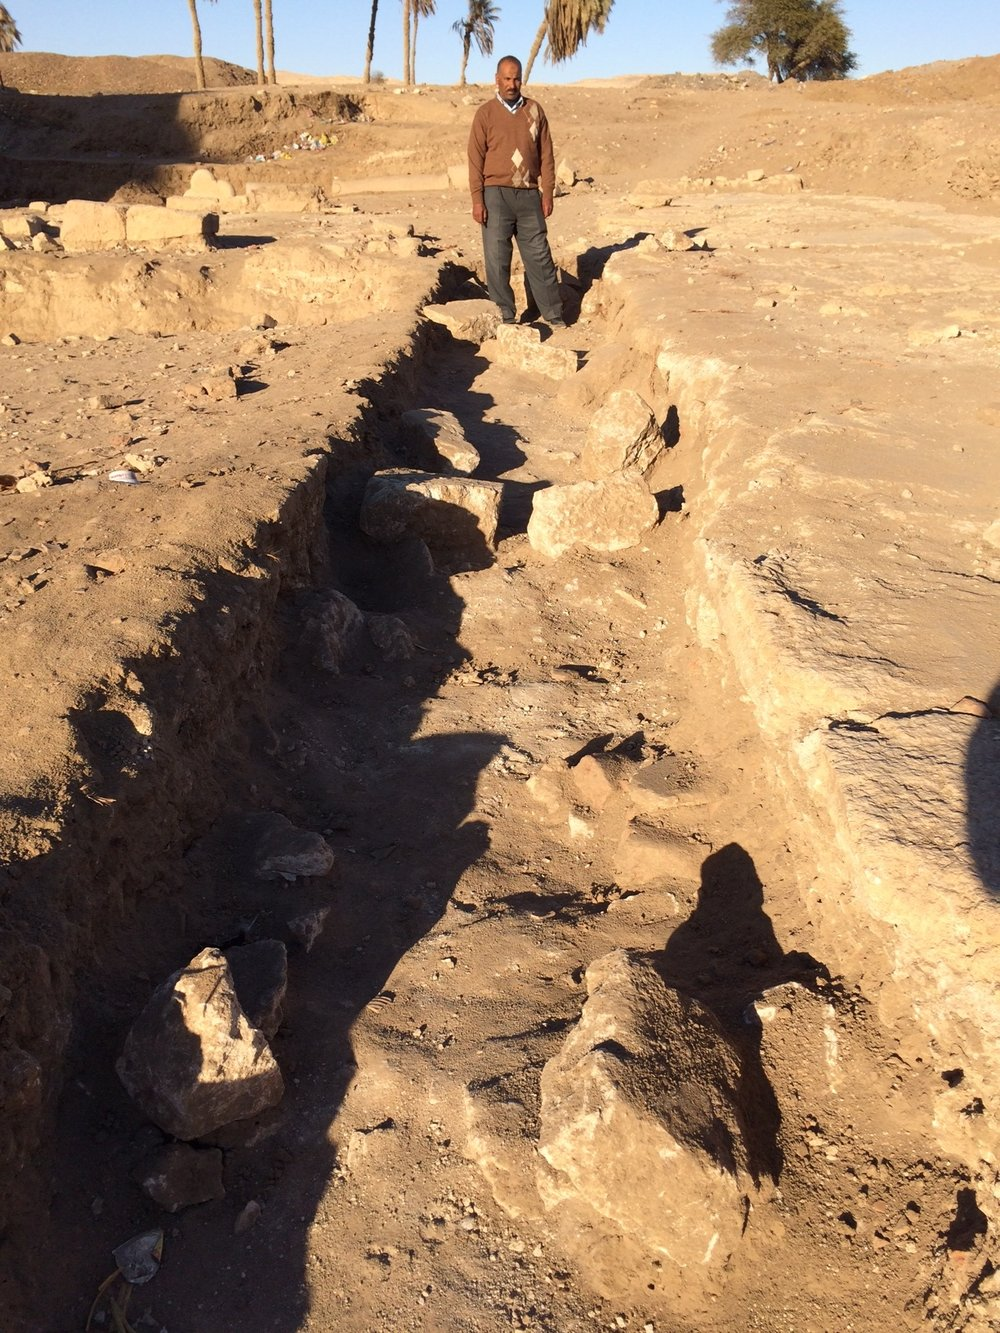 Fathy in the colonnade foundation trench showing intact mortar leveling course and some scattered foundation stones.